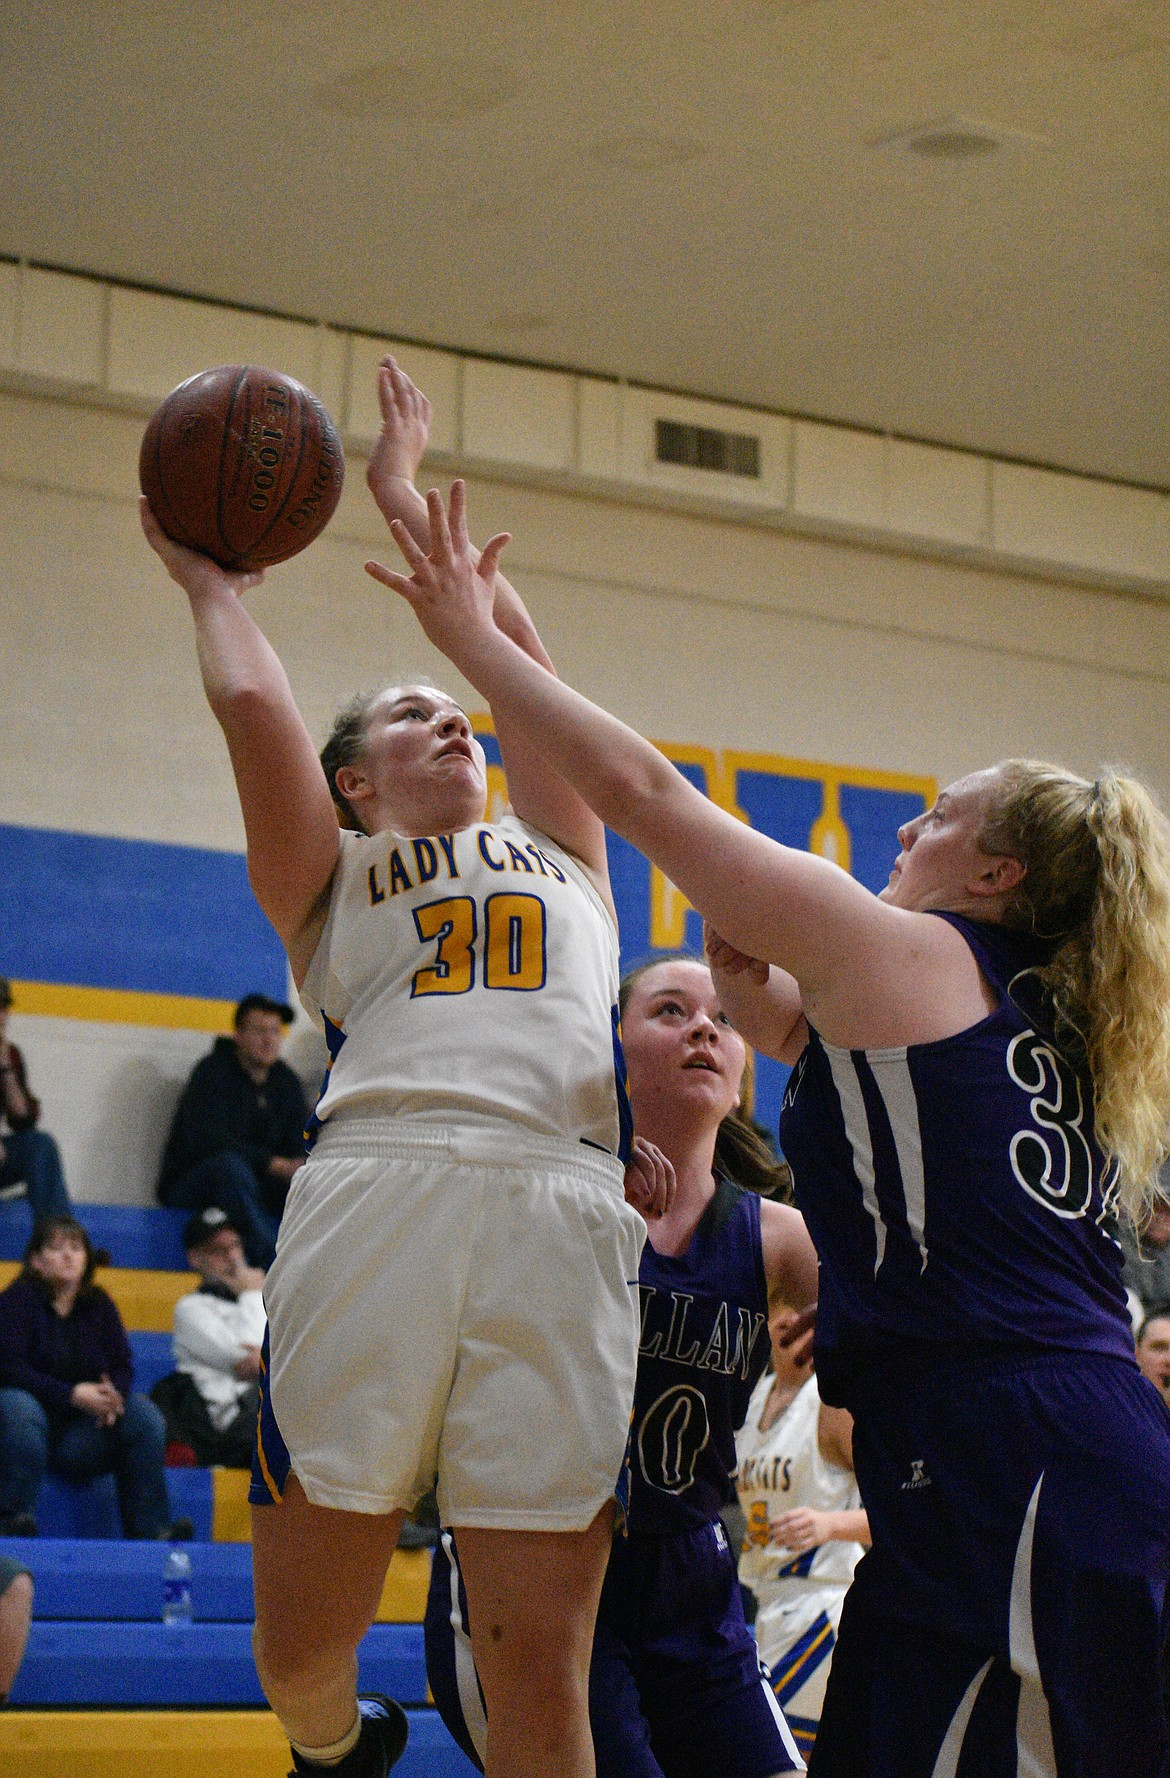 (Photo by DYLAN GREENE)   Senior Ellie Kiebert puts up a shot over the outstretched arm of a Mullan defender during a game this year. Kiebert is a finalist for the 3A-1A girls basketball award.